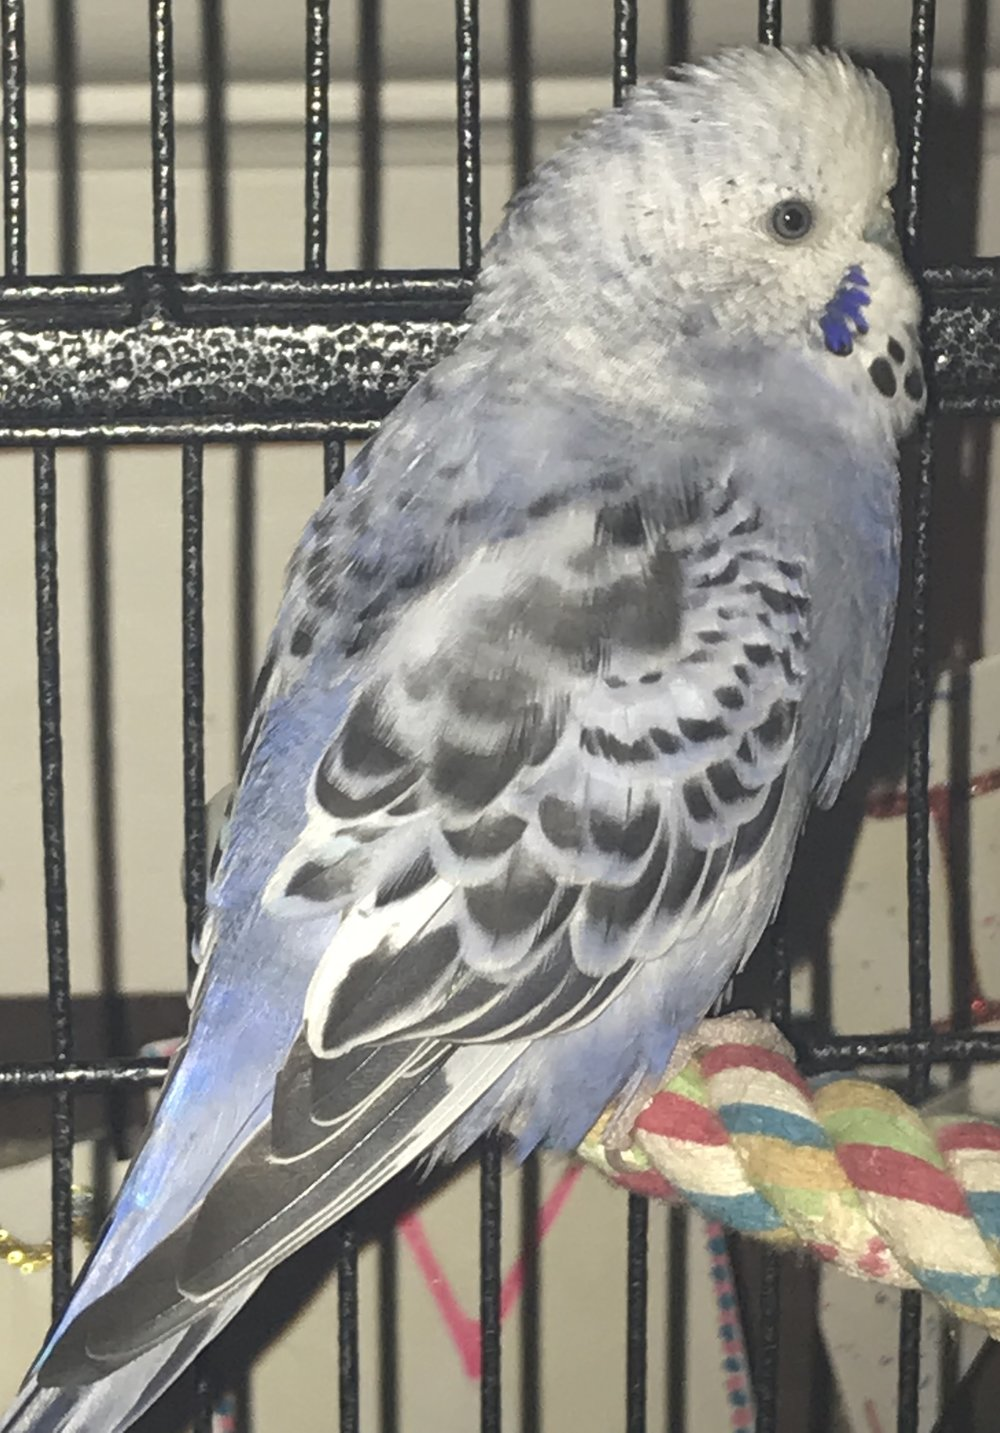 Mescal was adopted in November 2018. She is a parakeet who was transferred to CTPR from the MSPCA through our rescue-partnership.  Parakeets are native to Australia and live for 10+ years.